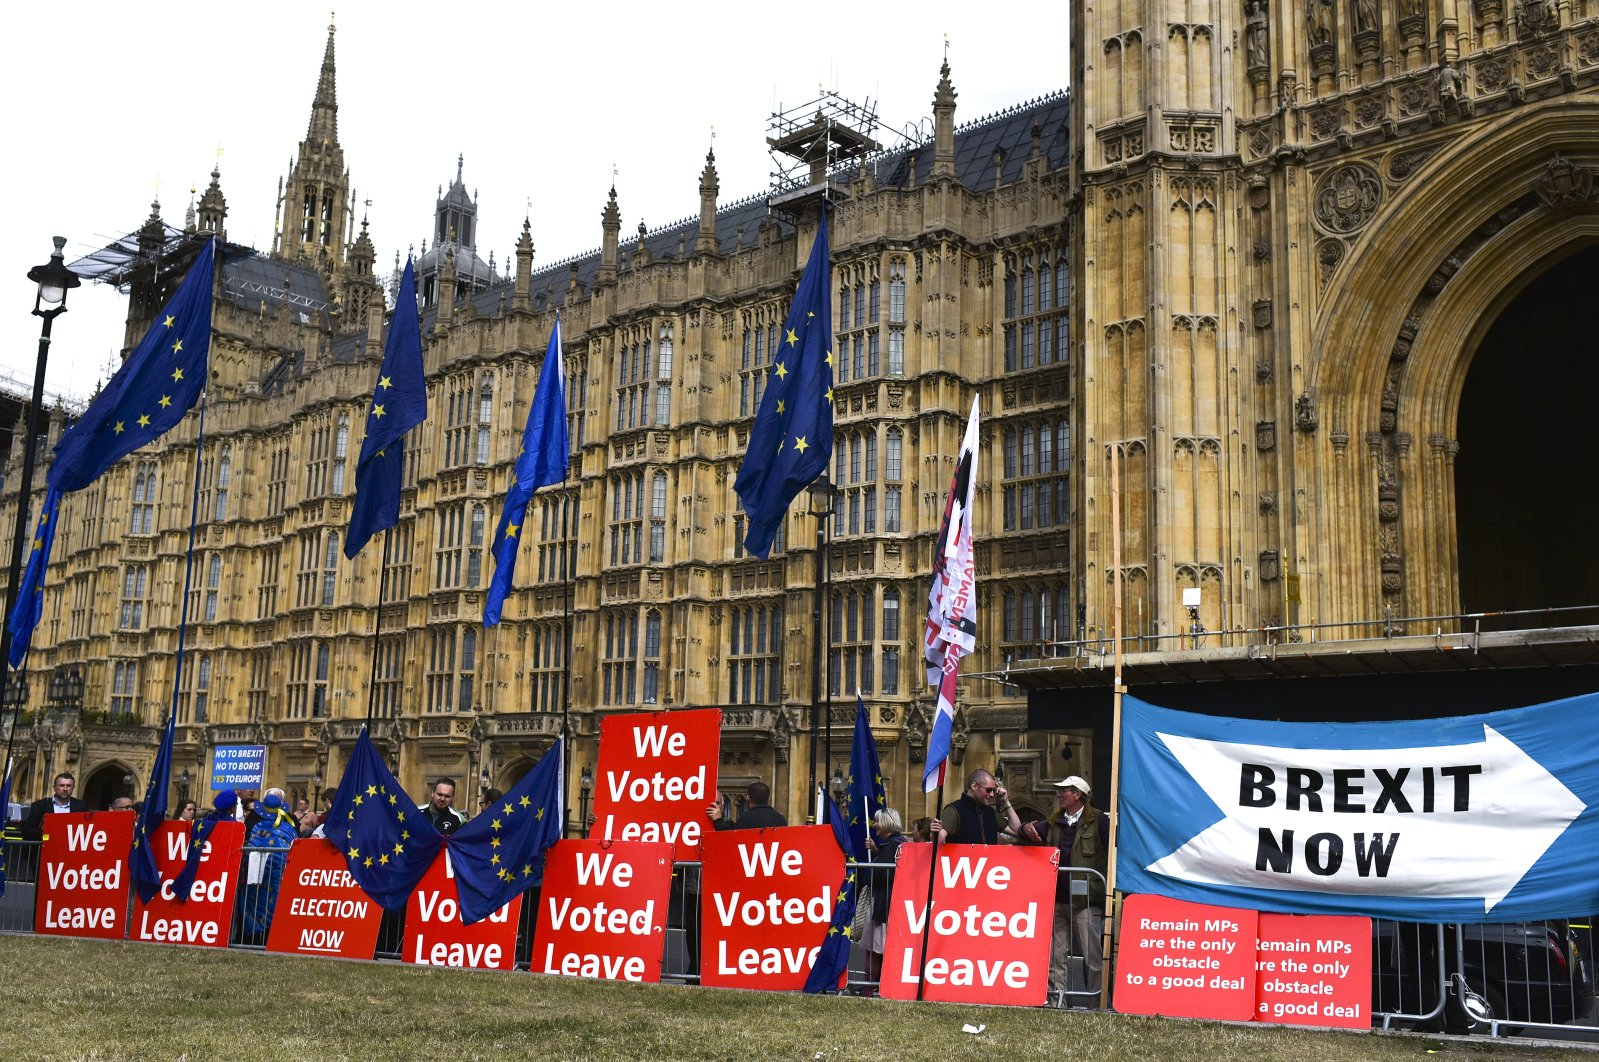 Pro Brexit placards and EU flags are pictured outside the Houses of Parliament, London, Sept. 5, 2019. (AP Photo)